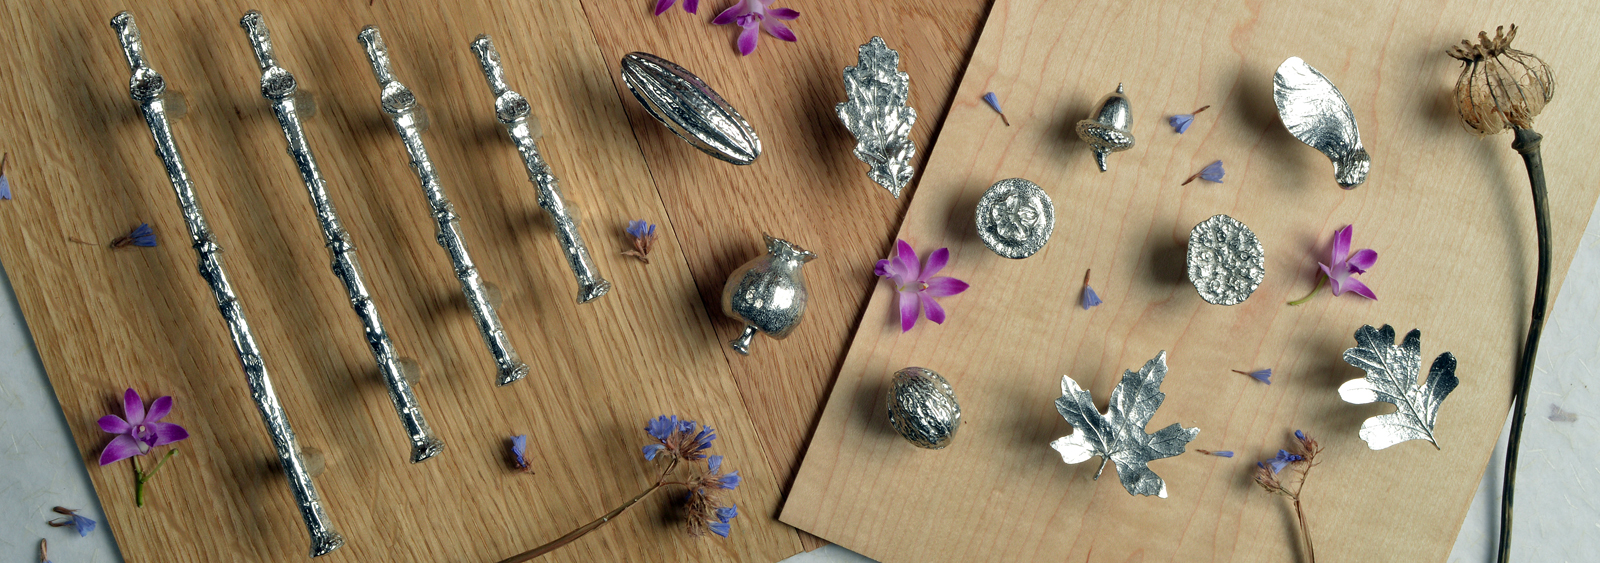 Pewter Cabinet Handles UK Handmade by Glover and Smith